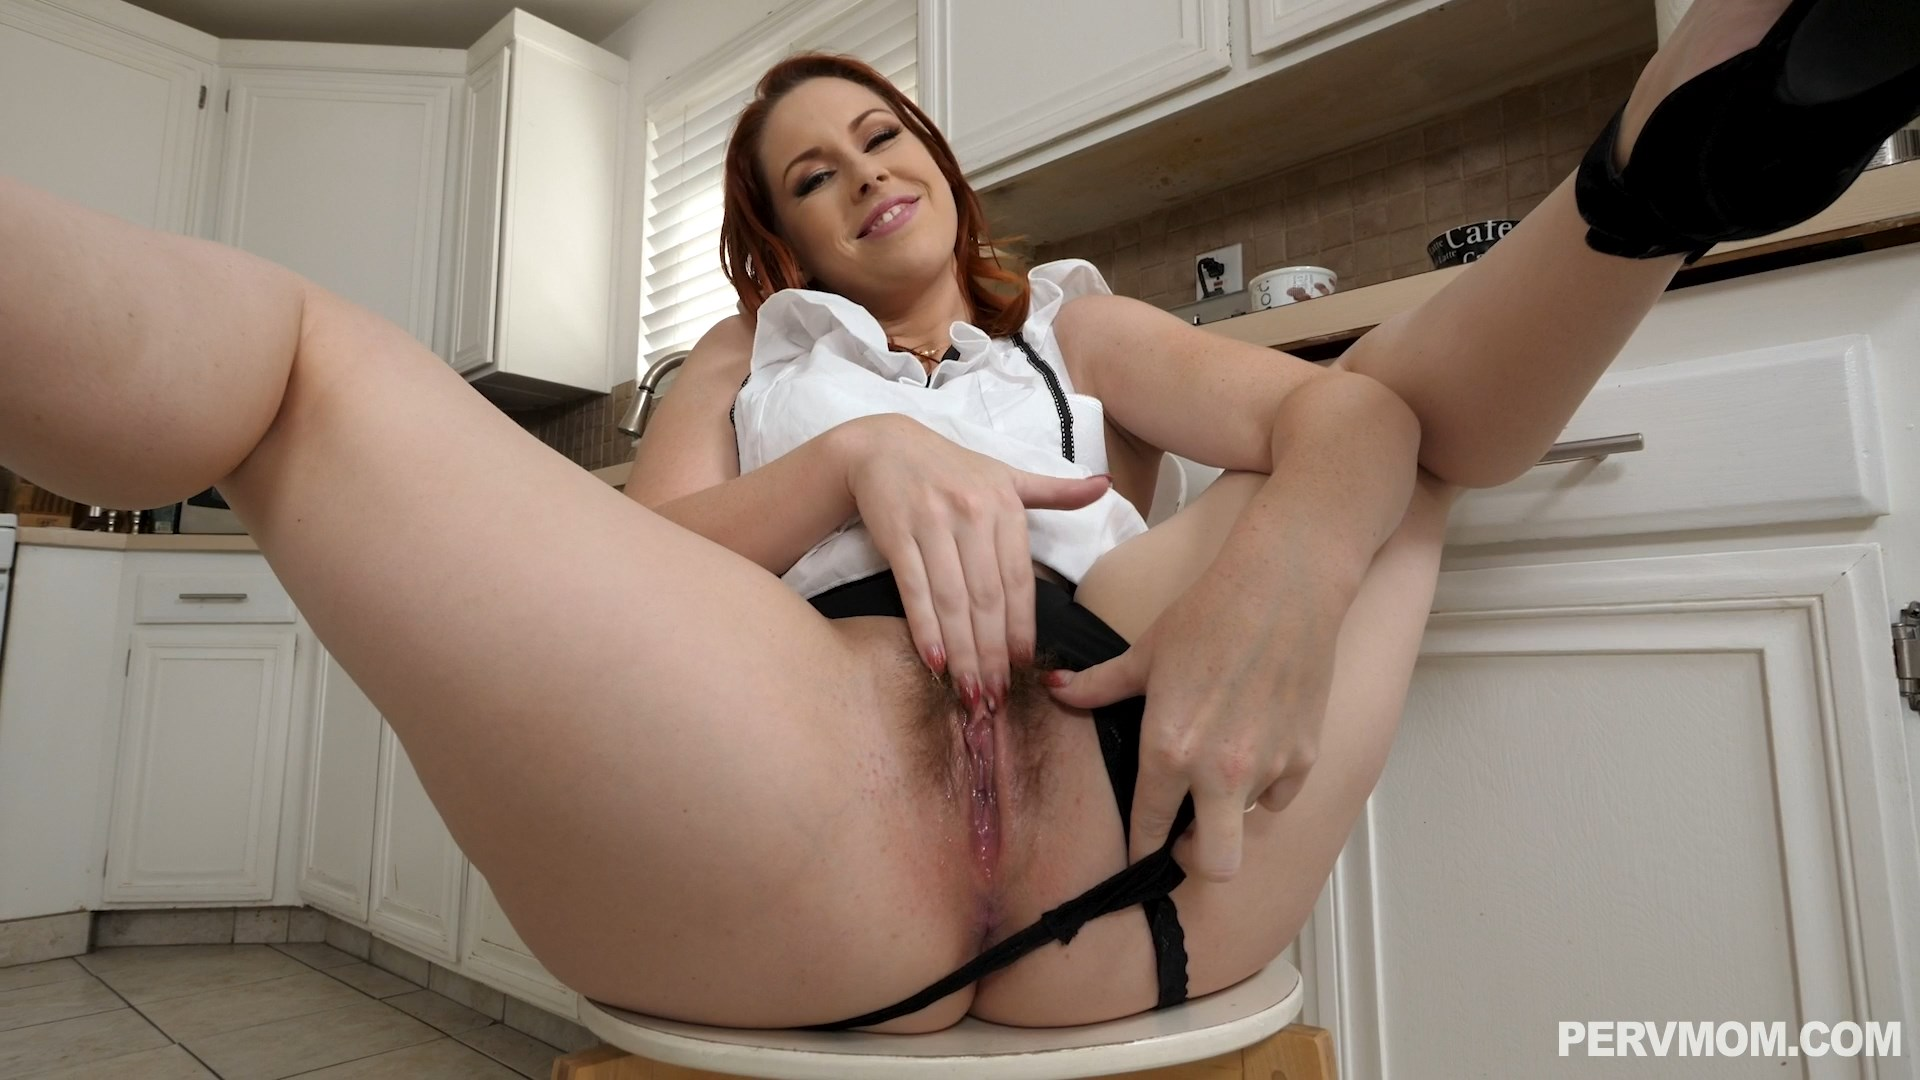 Perv Mom - Edyn Blair - A Couple Of Stepmom Creampies